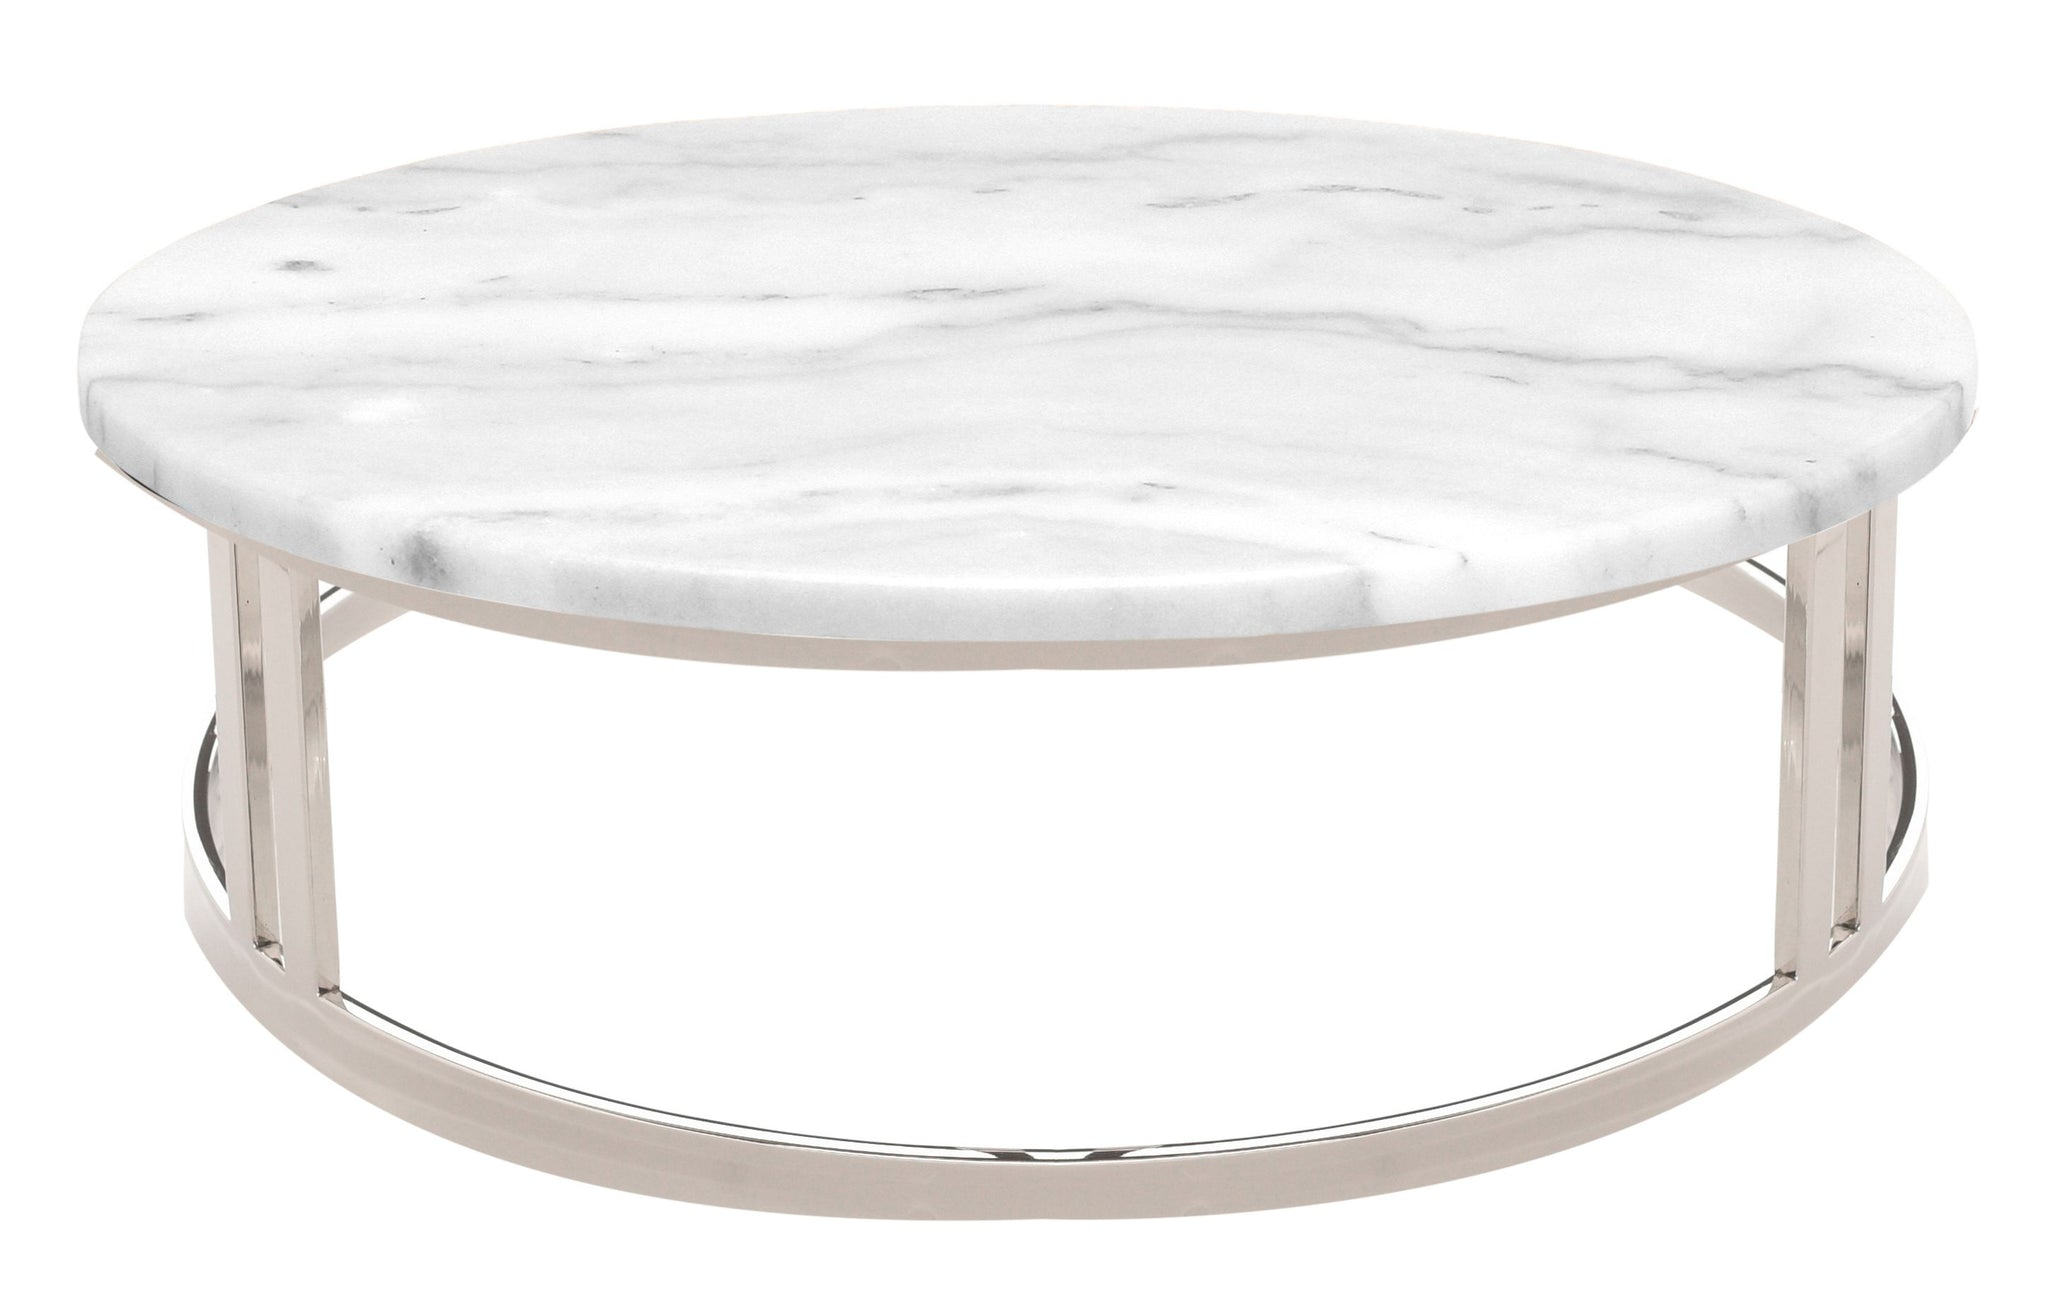 Nicola Coffee Table In White Marble Polished Silver Design By - Nuevo marble coffee table